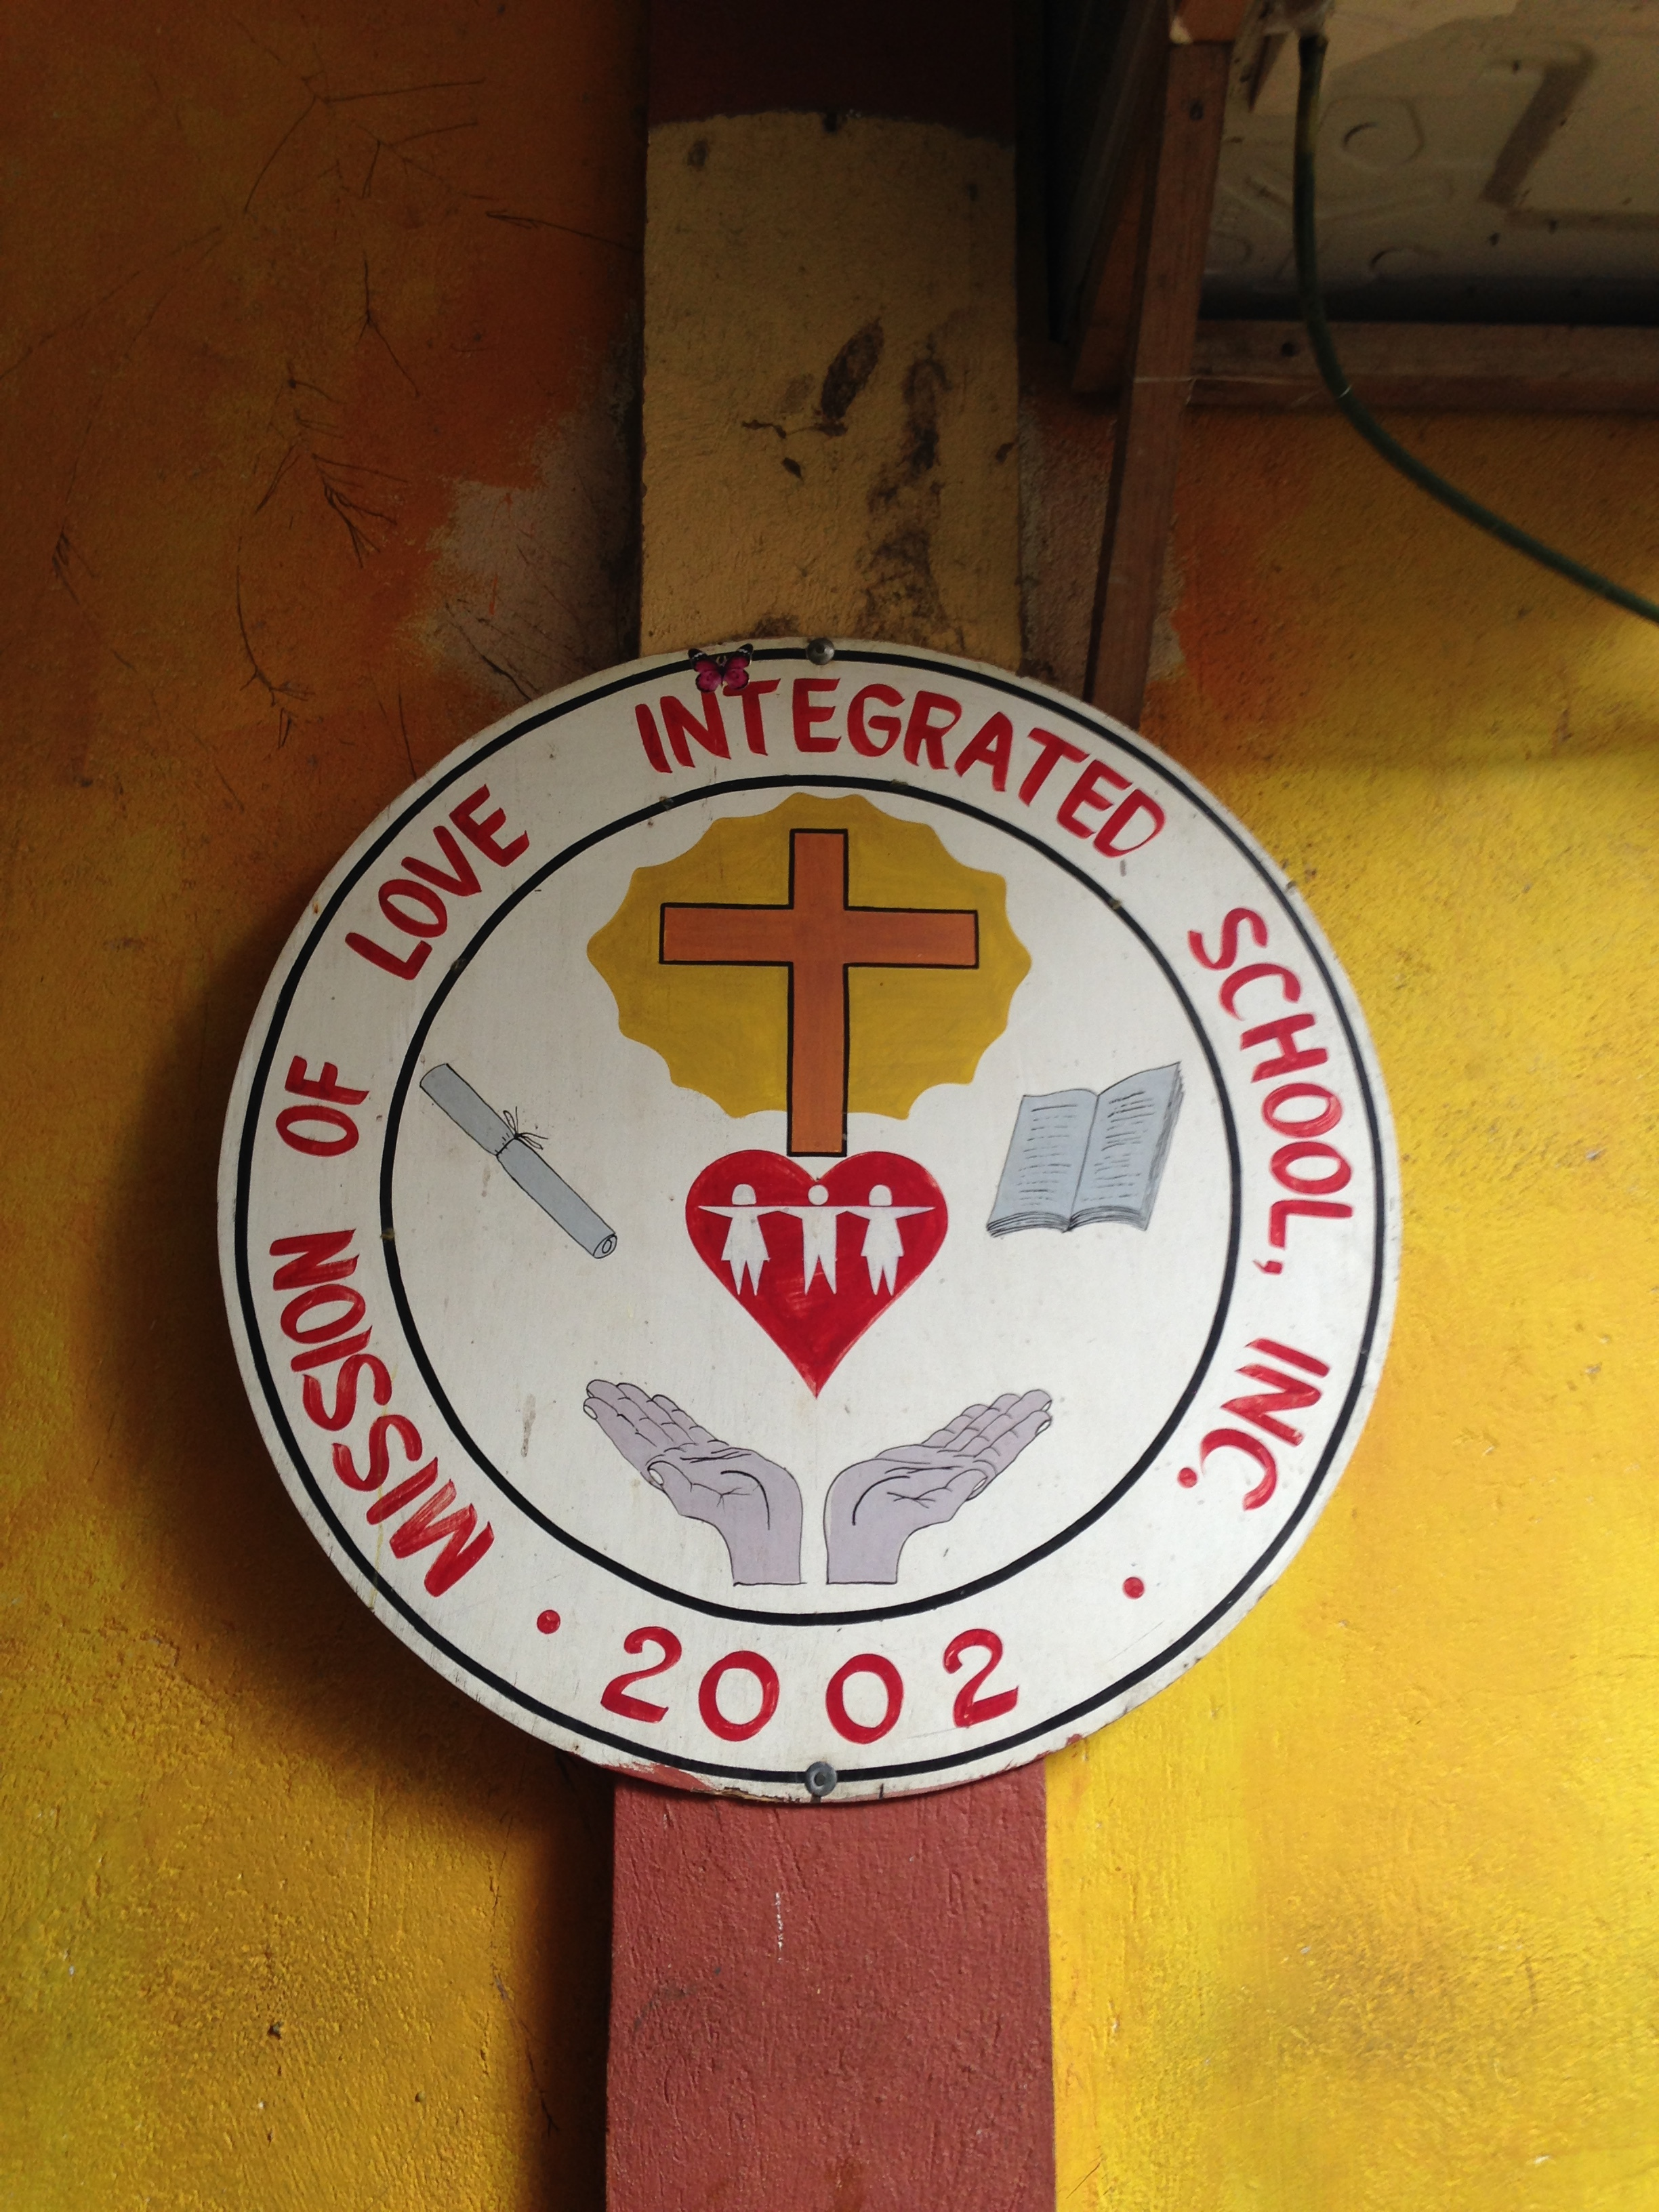 The Mission of Love Integrated school was founded to bring opportunity and meet the needs of the Ati children.